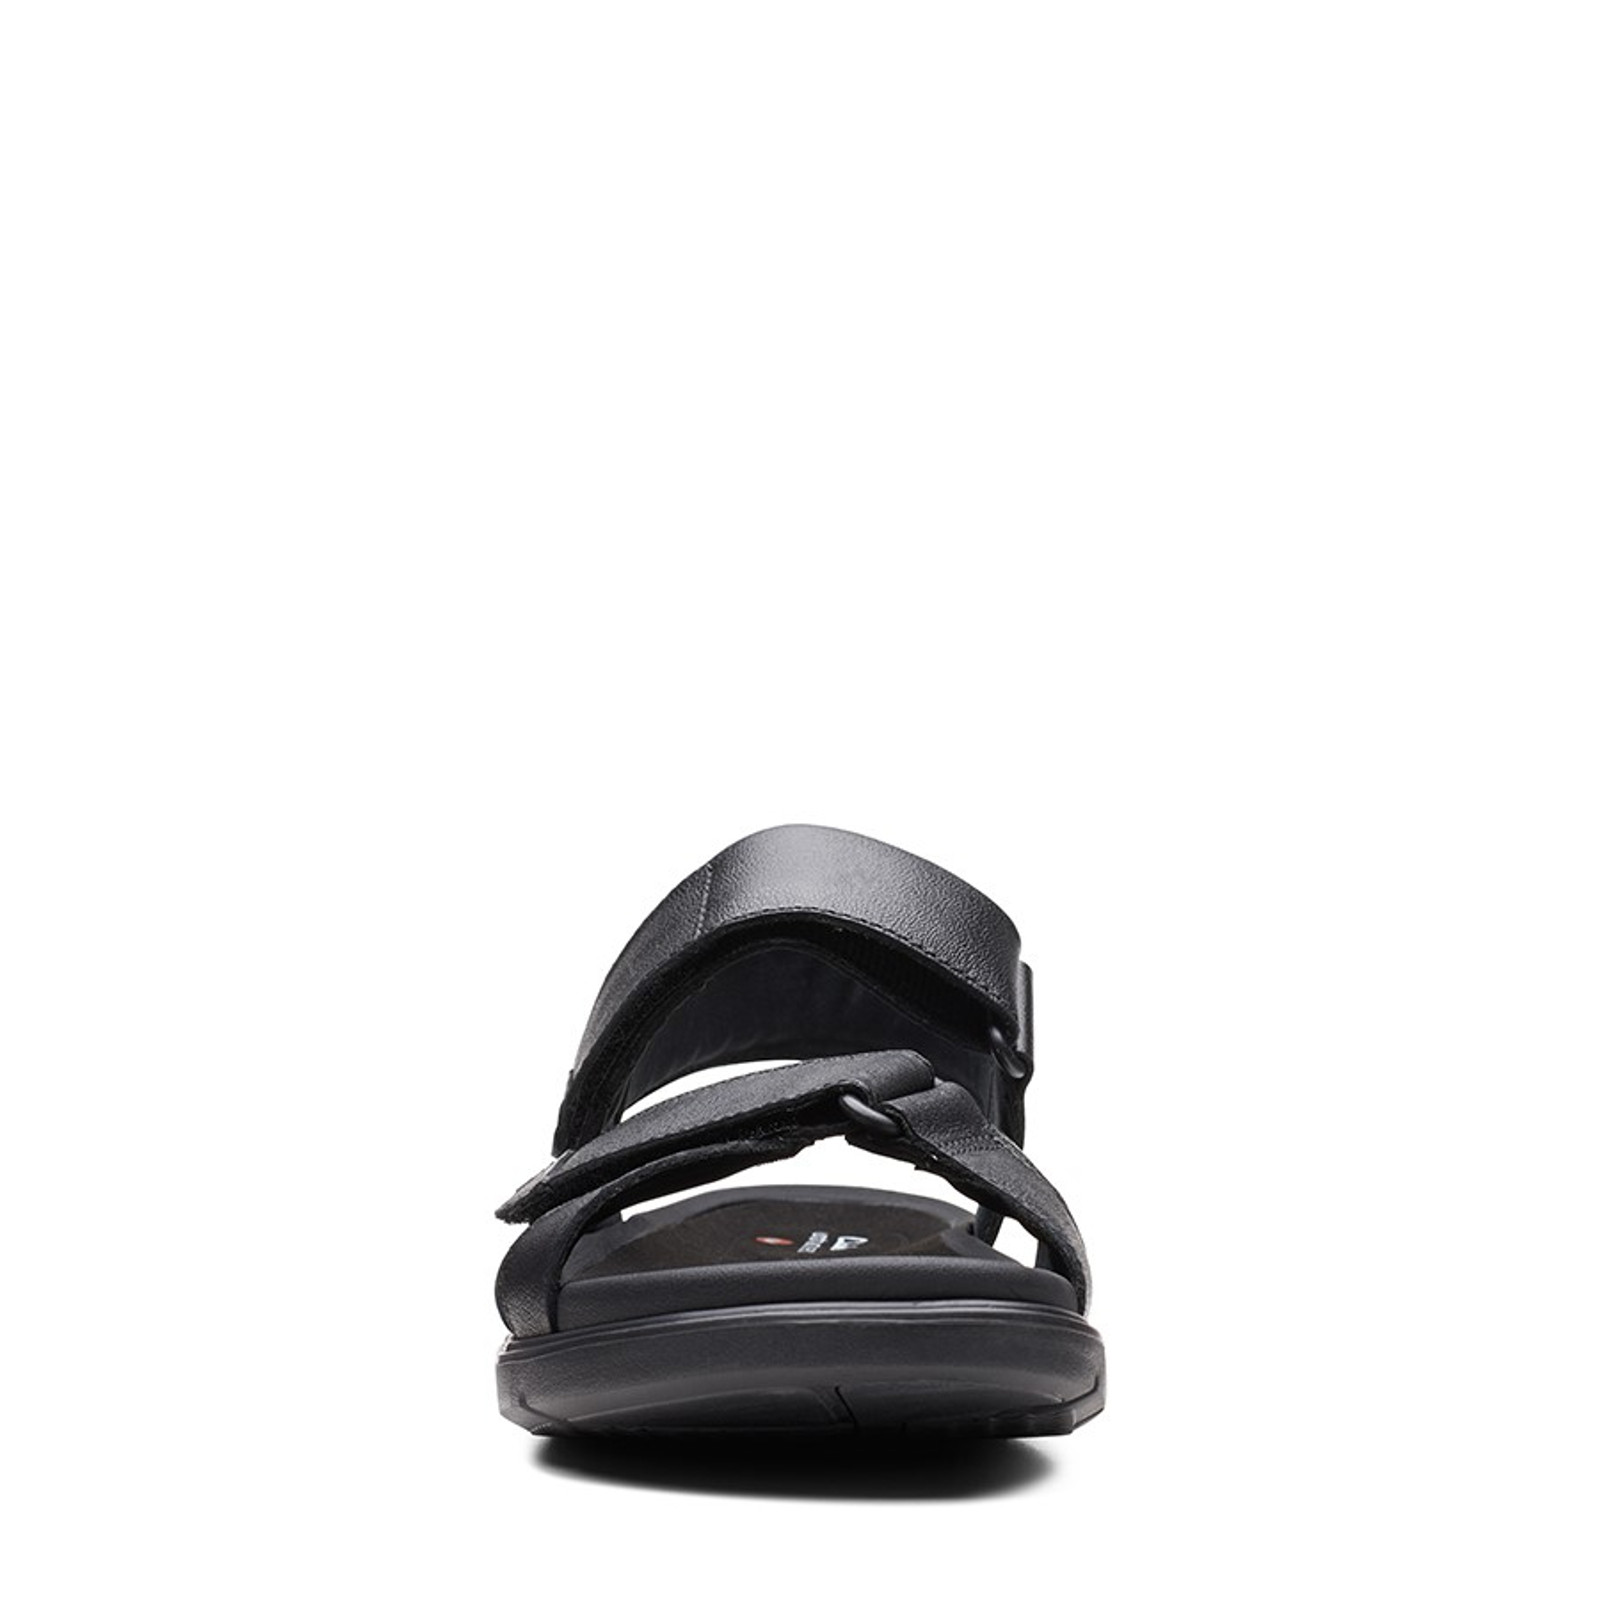 Clarks Mens UN WILMORE BAND Black Leather